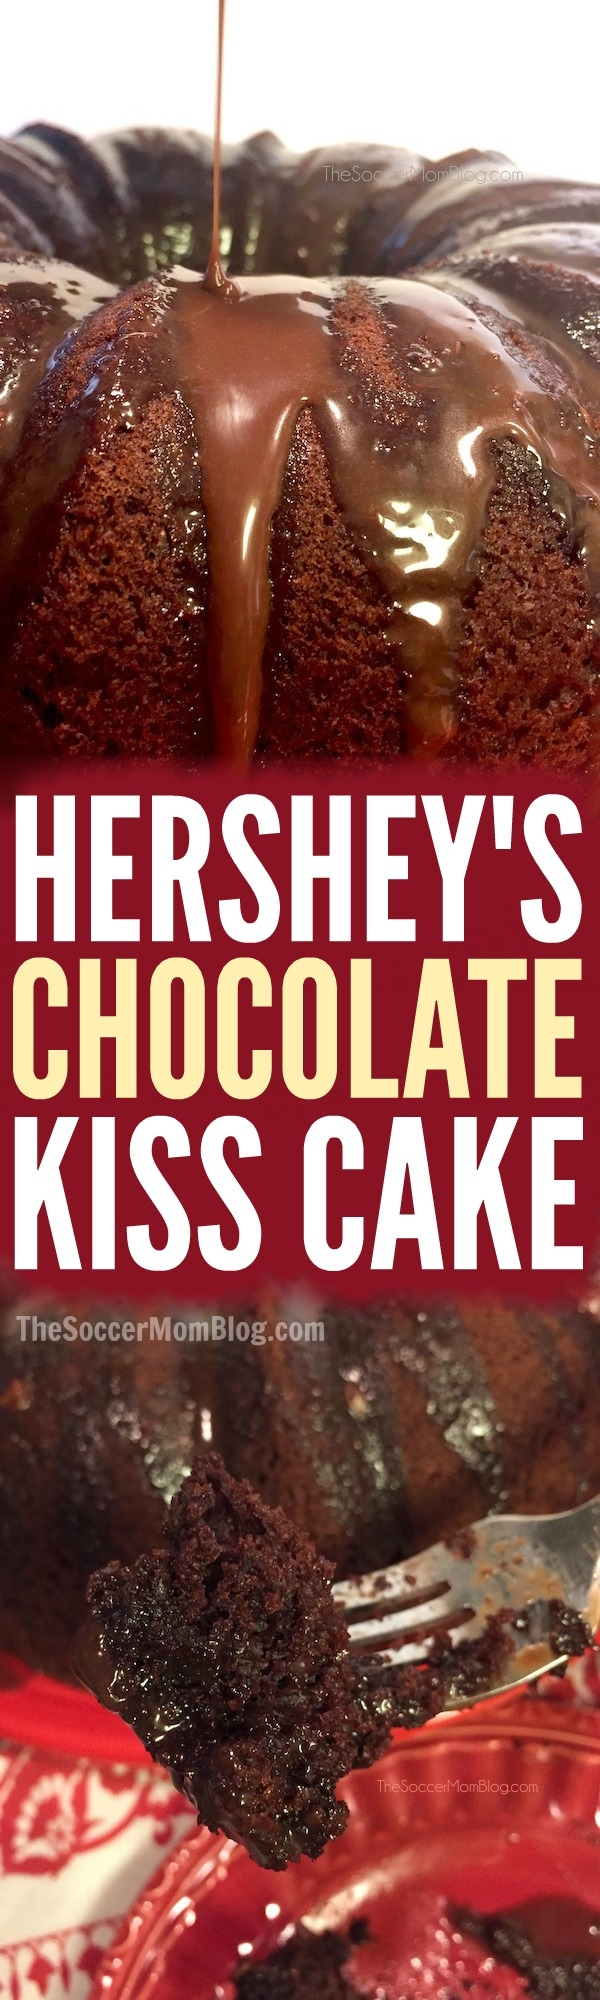 This Double Chocolate Hershey's Kiss Cake is SO rich, SO fudge-y, and SO decadent— even one bite is pure dessert bliss!